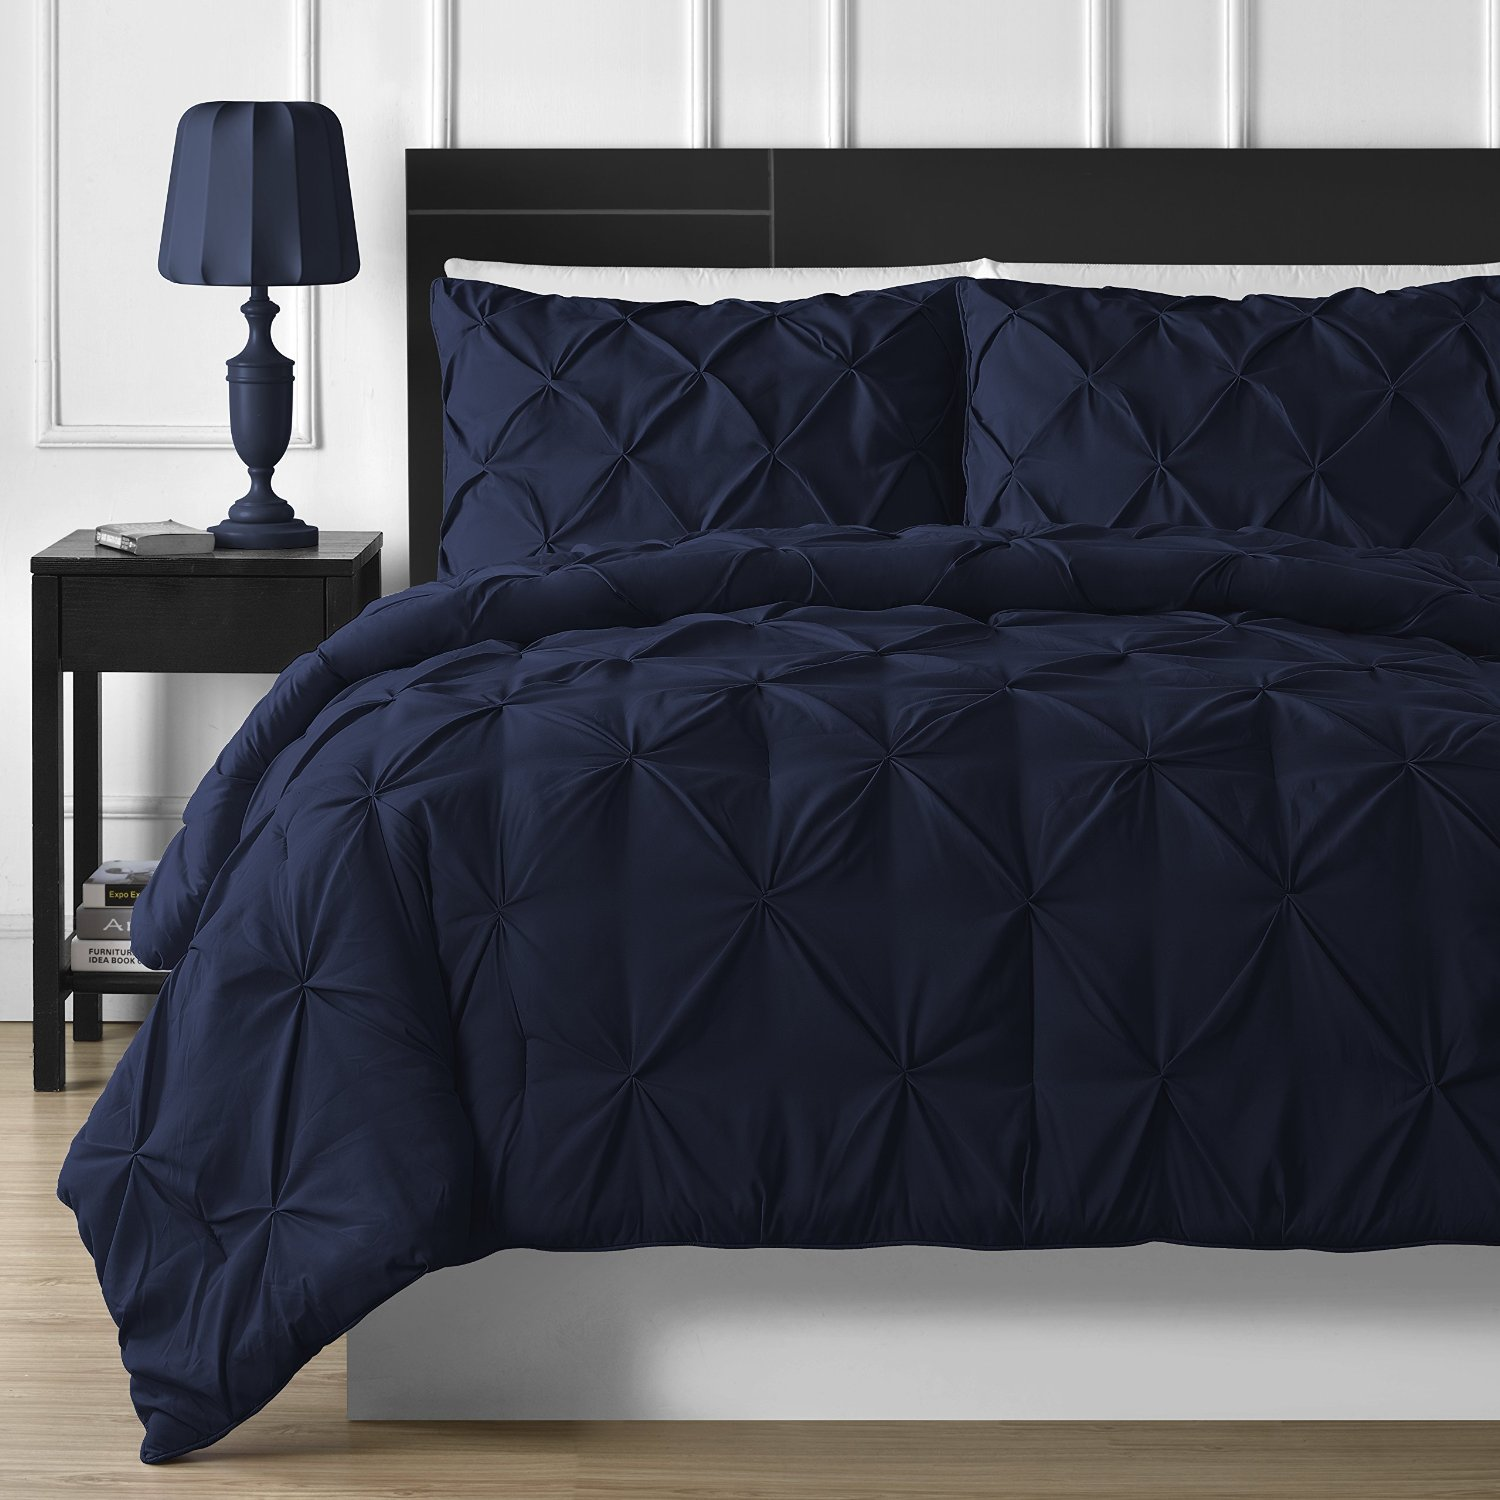 Fancy Collection 3pc Full//Queen Comforter Set Down Alternative Solid Navy Blue New #Down Alternative Navy Blue